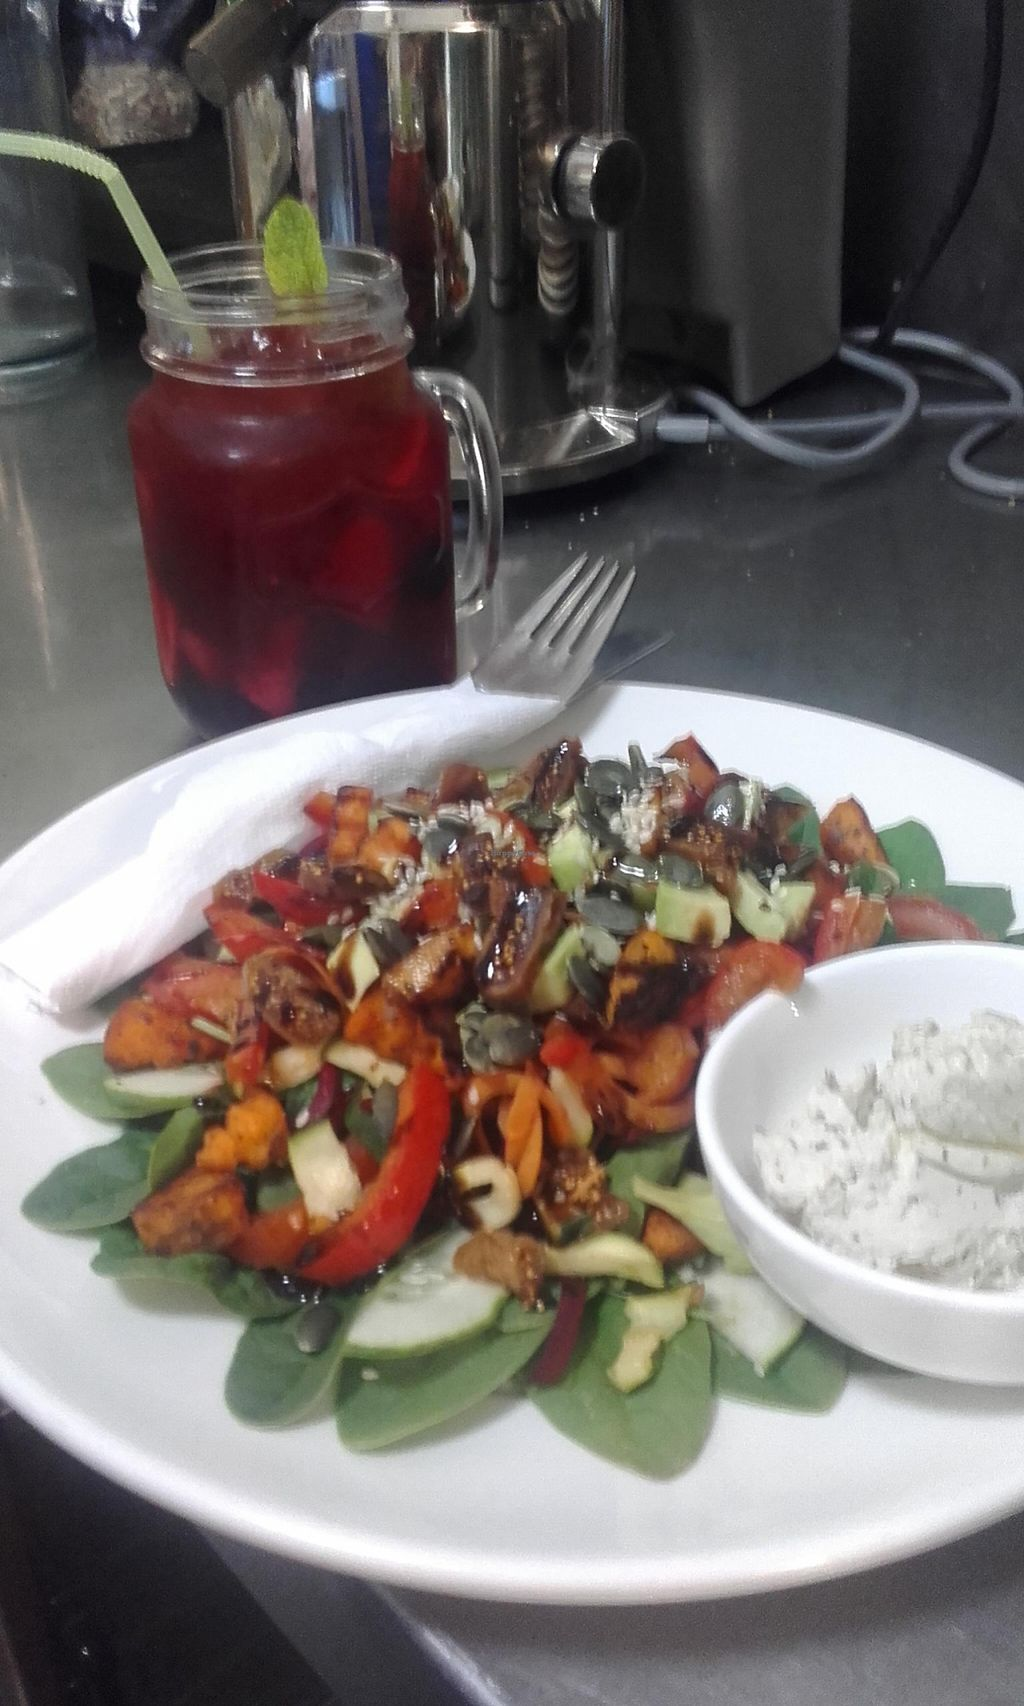 """Photo of CLOSED: Healthy Harvest   by <a href=""""/members/profile/Maria%20Marshall"""">Maria Marshall</a> <br/>Amazing  salads with cashew  cream  cheese  <br/> March 14, 2016  - <a href='/contact/abuse/image/58761/140026'>Report</a>"""